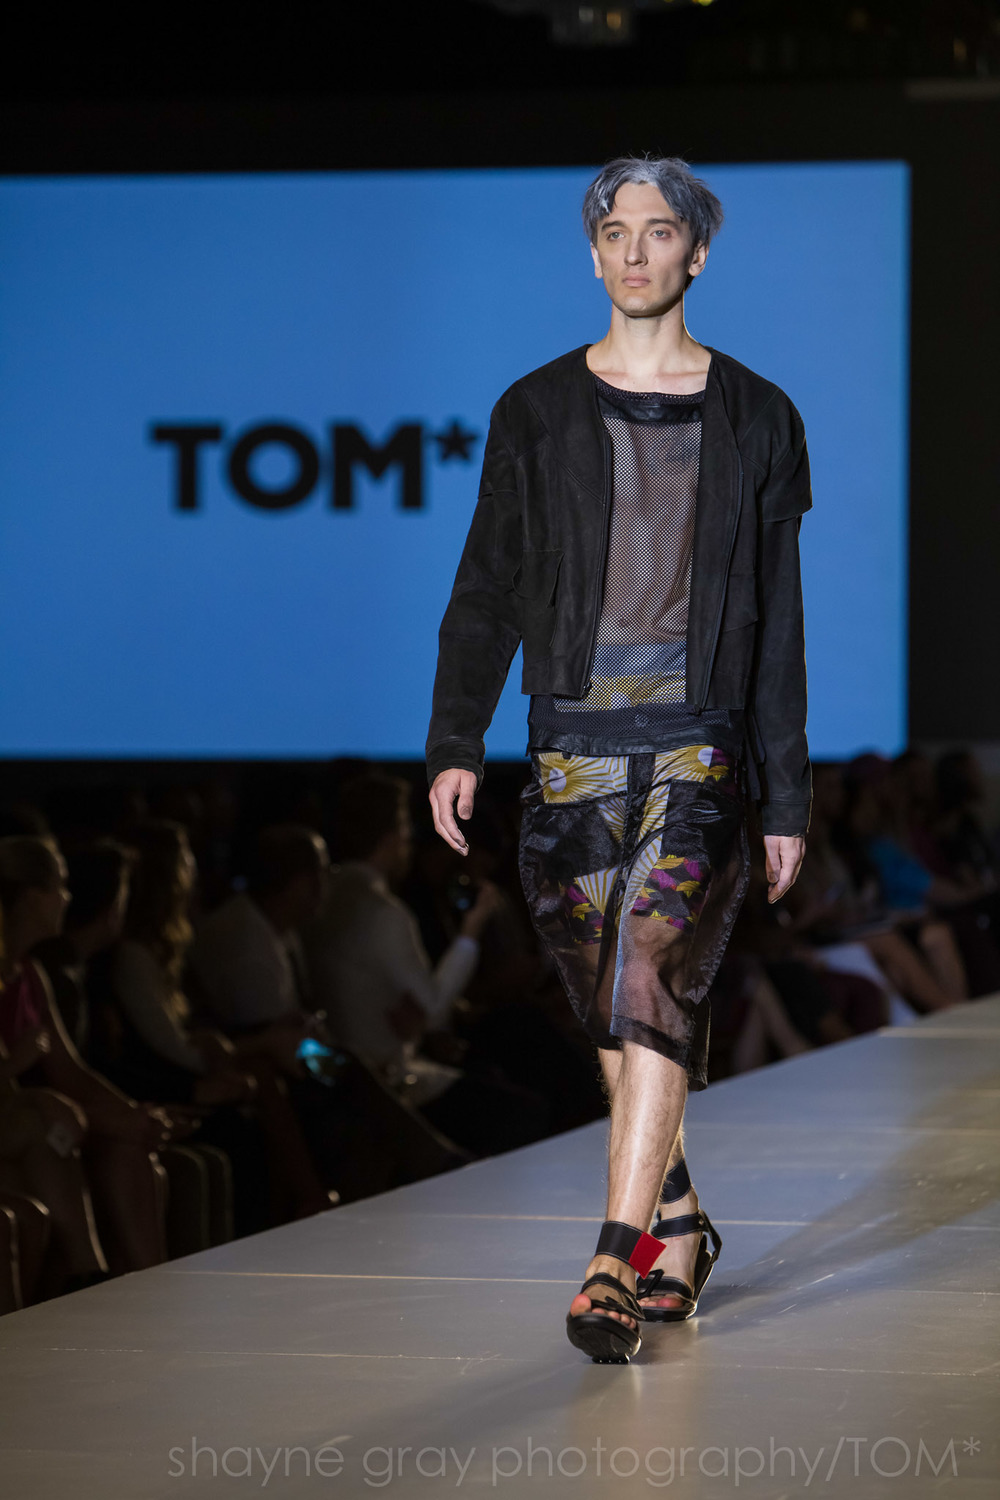 Shayne-Gray-Toronto-men's-fashion_week-TOM-jose-duran-7716.jpg